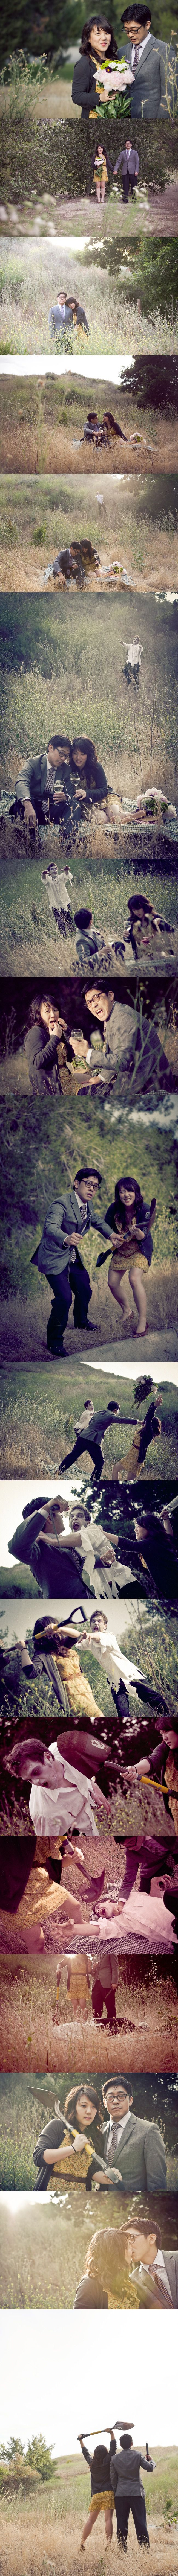 Engagement photos. So sweet. <3